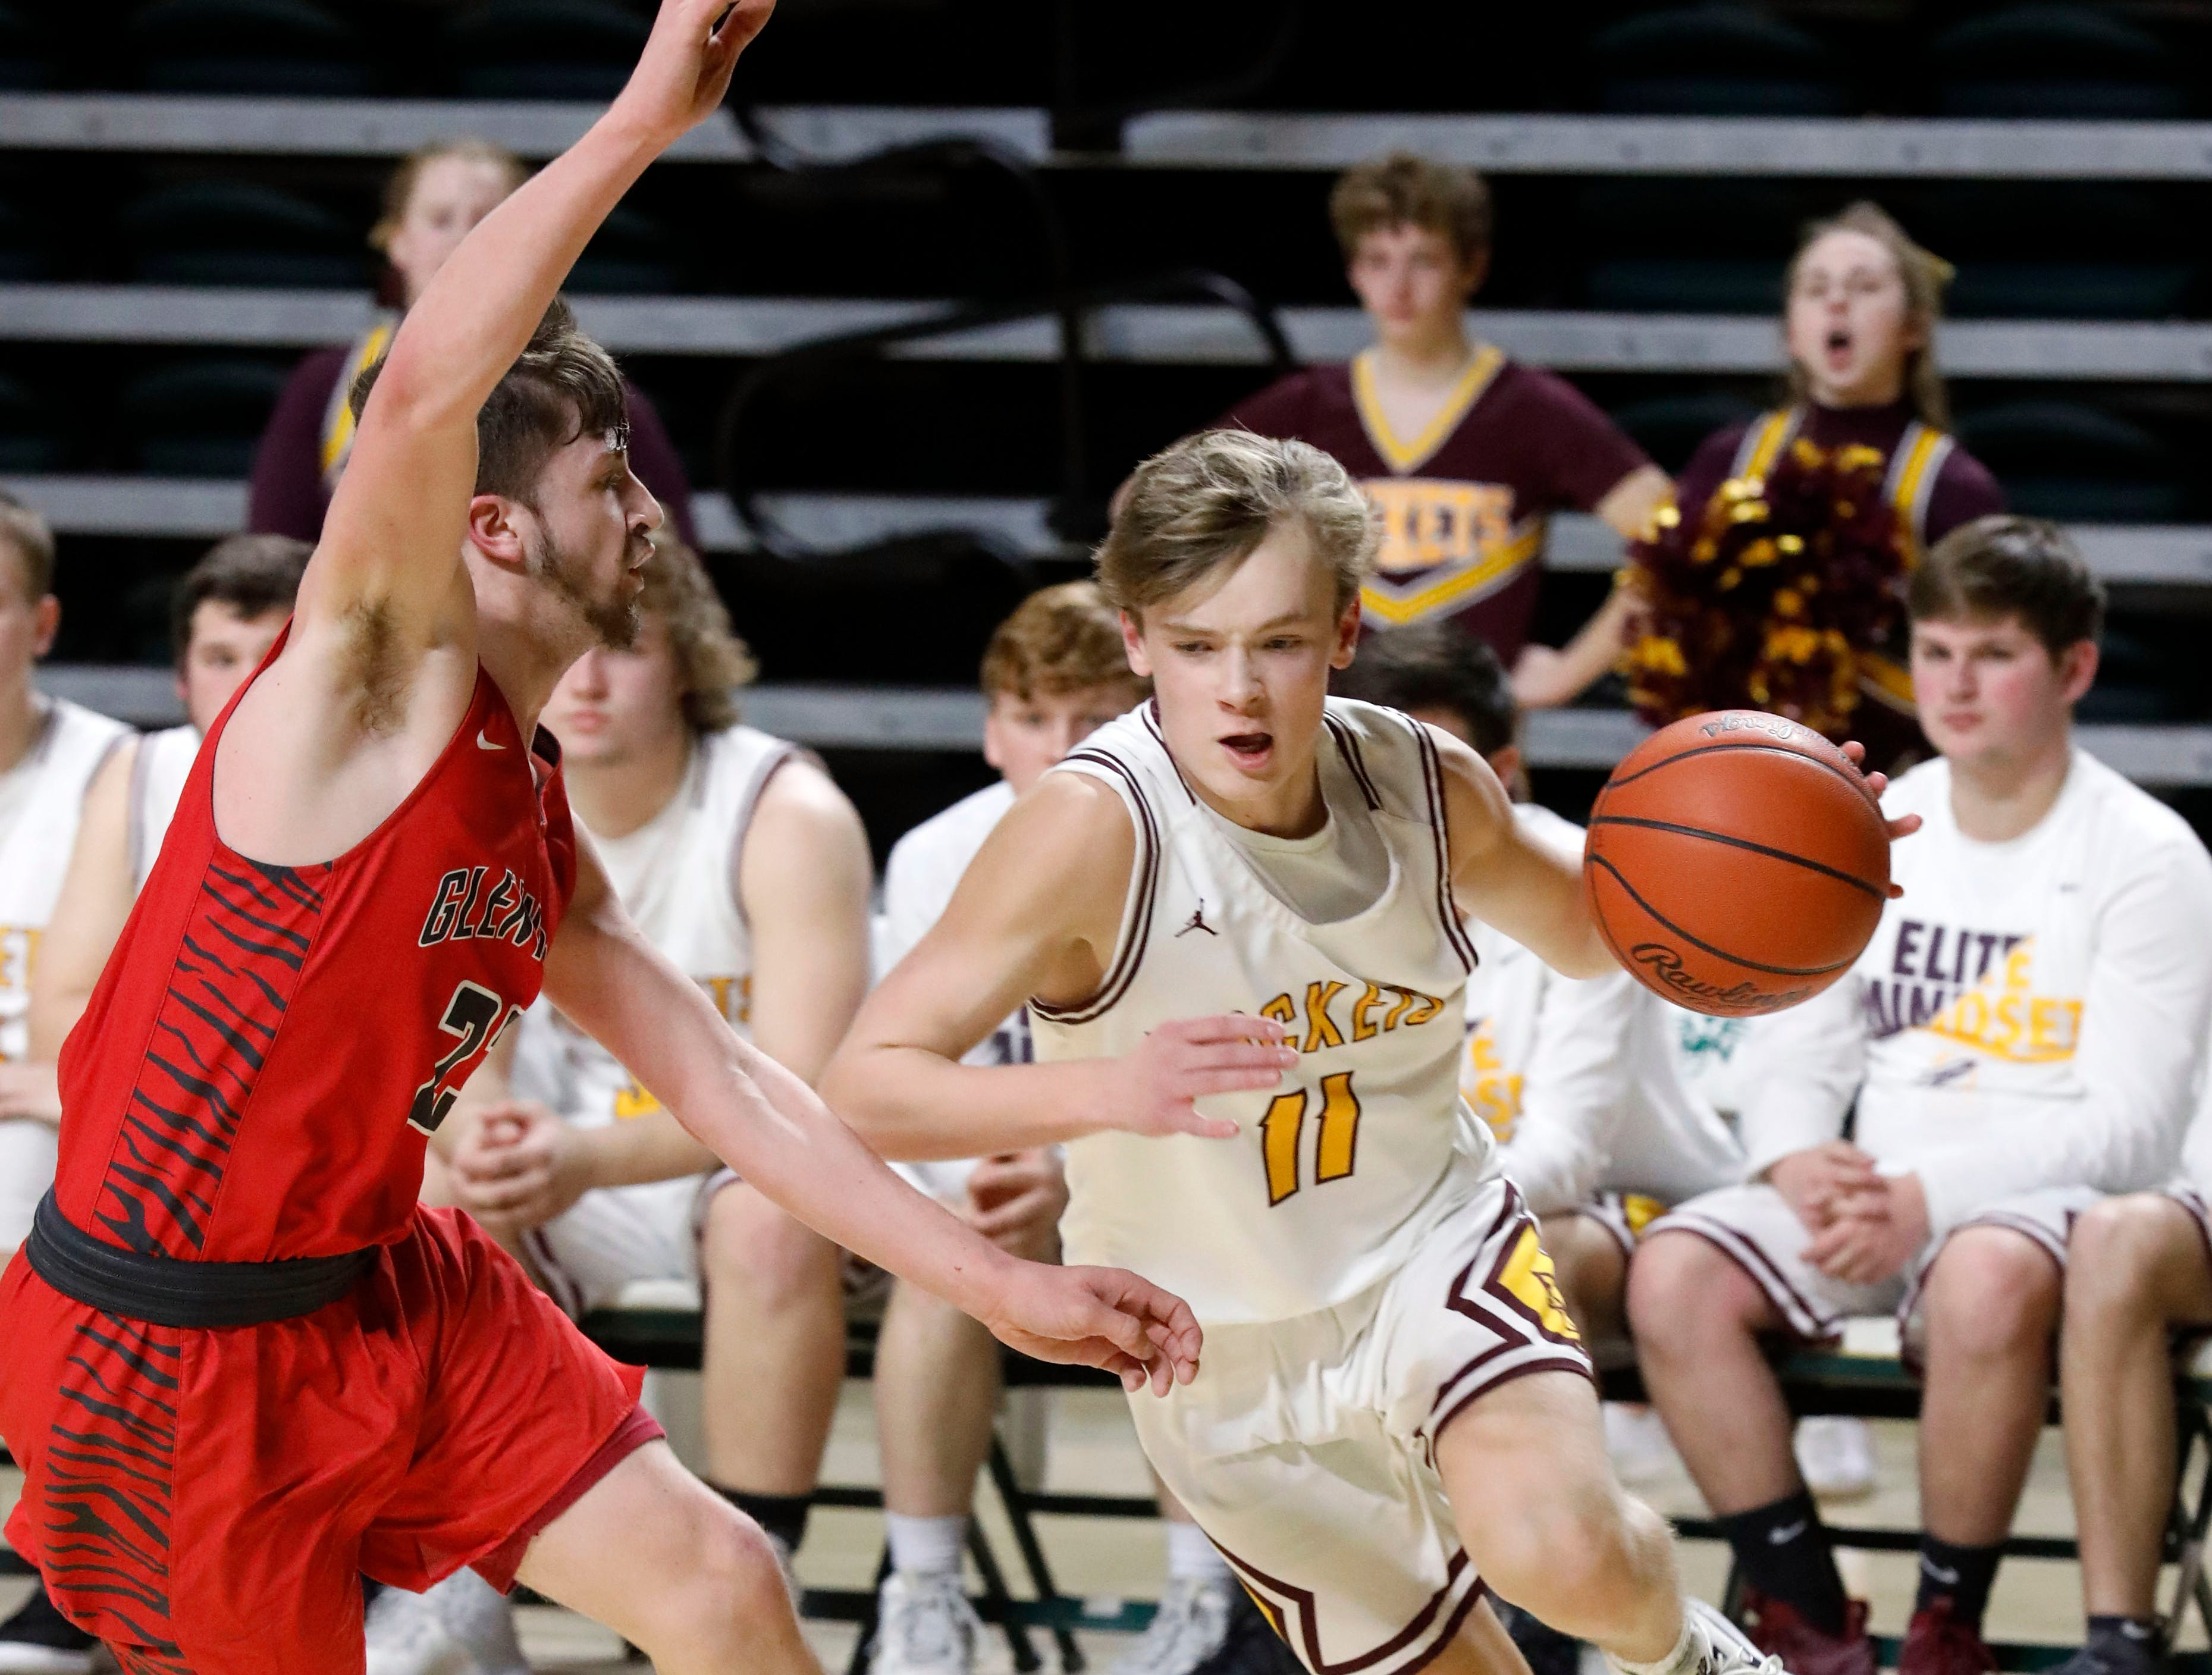 Berne Union's Jacob Harmon drives past Glenwood's Marcus Saunders during Tuesday's regional Semifinal game, March 12, 2019, at the Ohio University Convocation Center in Athens. The Rockets lost the game 69-64.